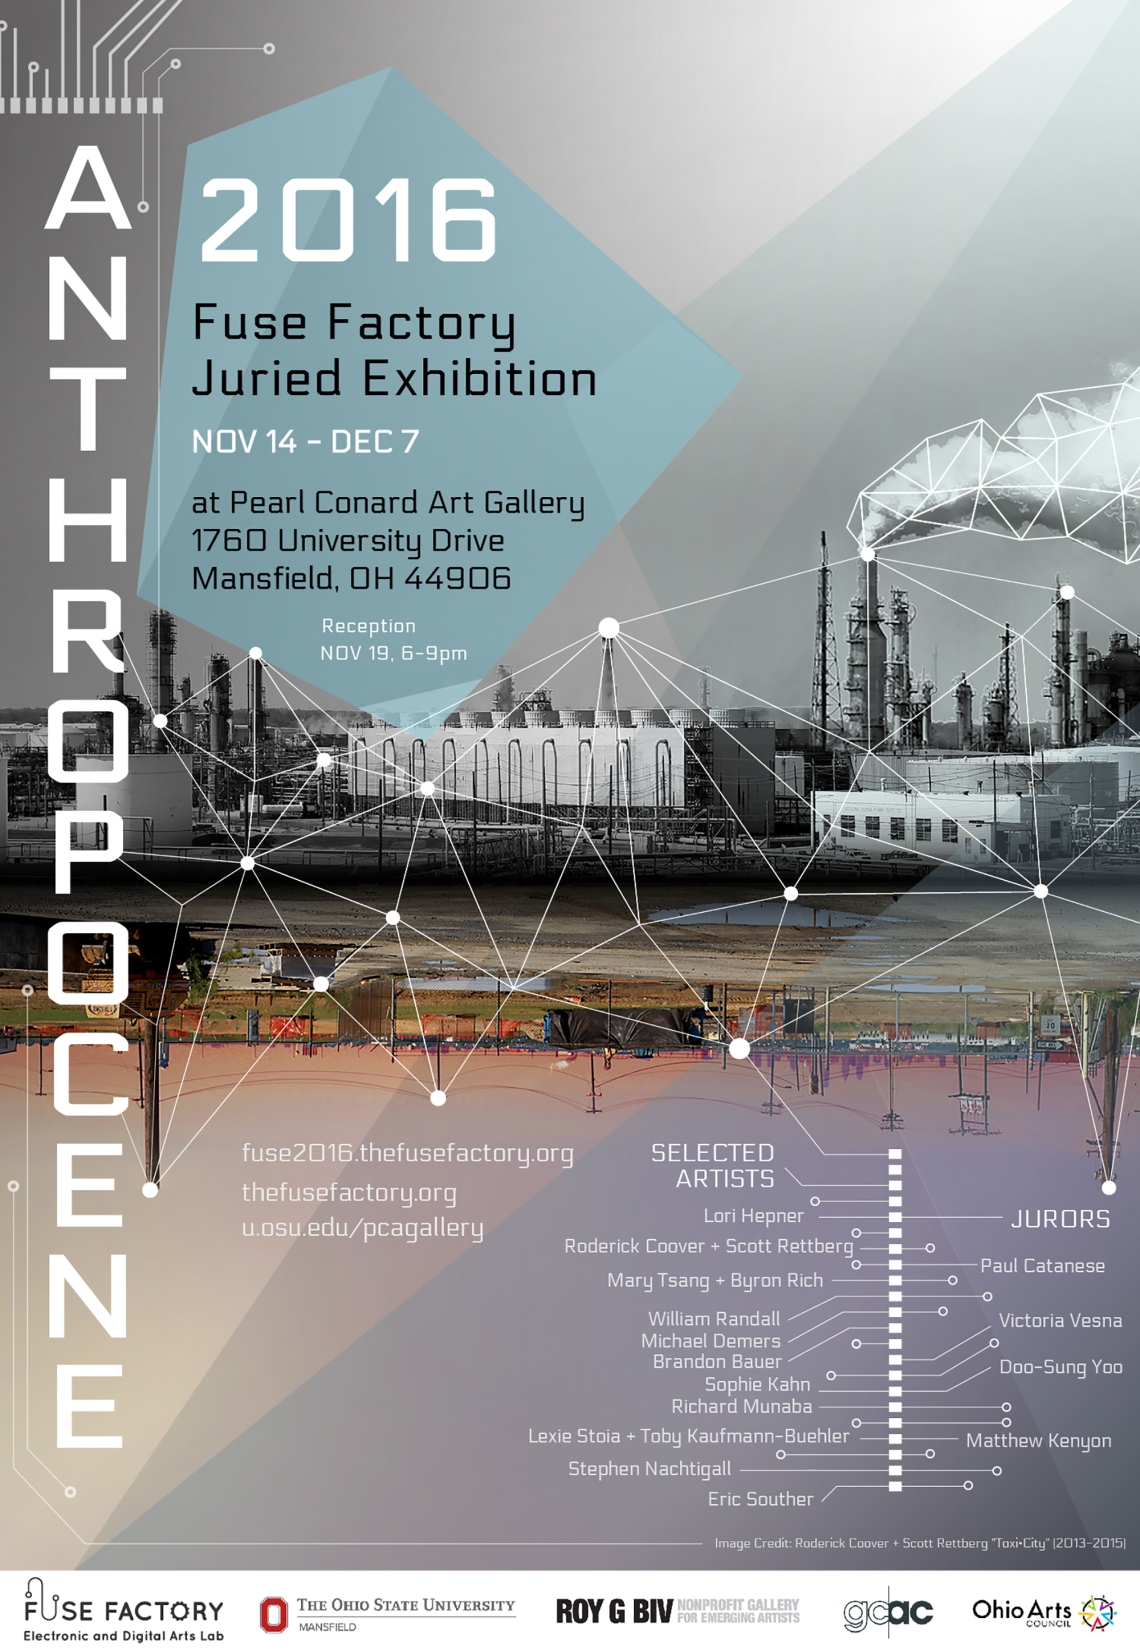 anthropocene-poster-72ppi